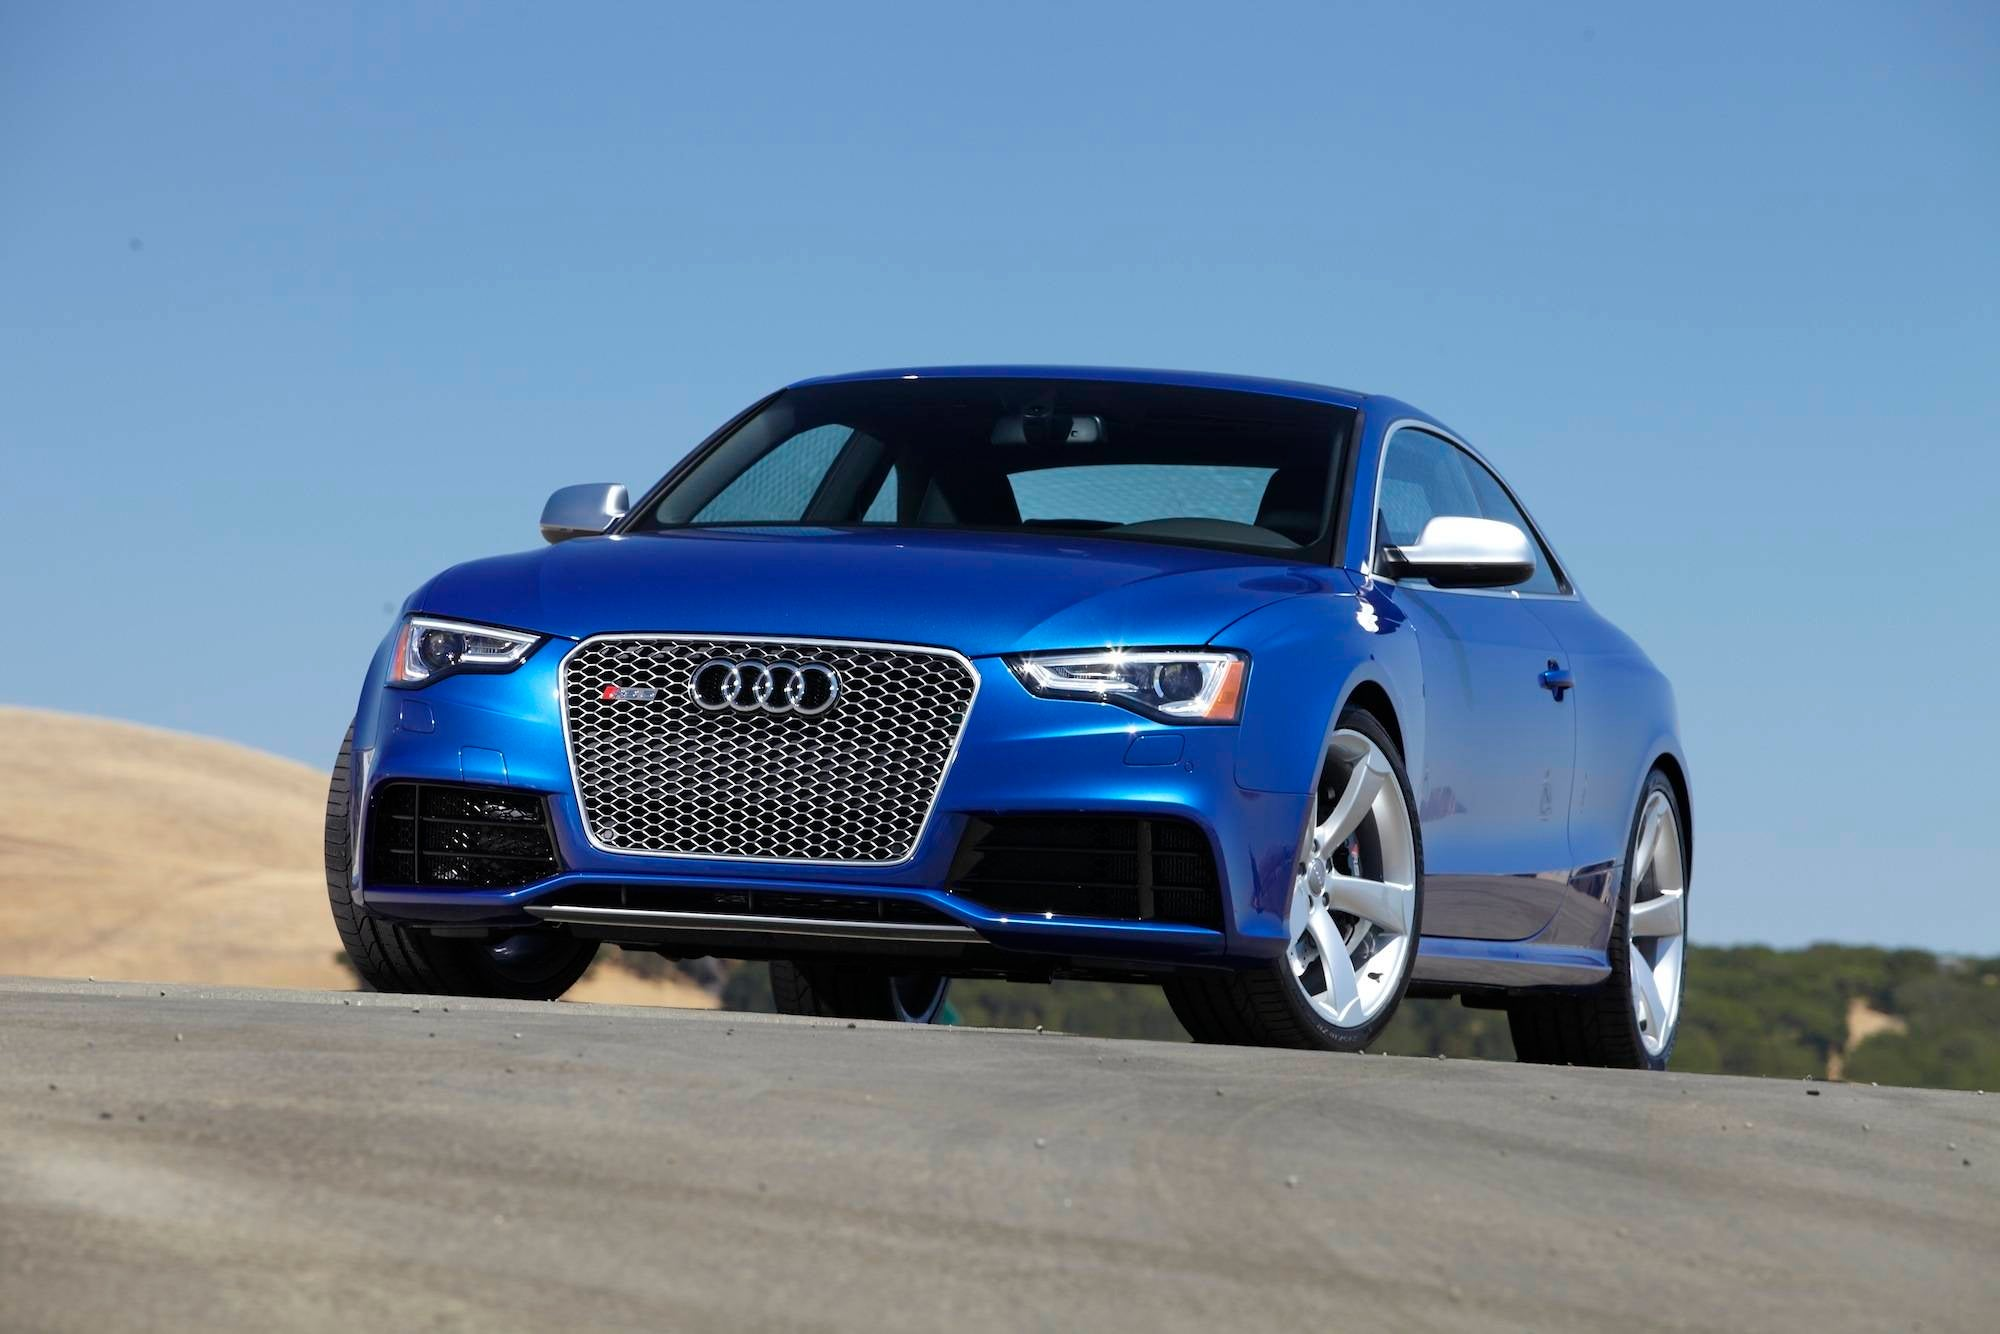 Test Drive: The 2013 Audi RS5 Coupe Quattro S Tronic